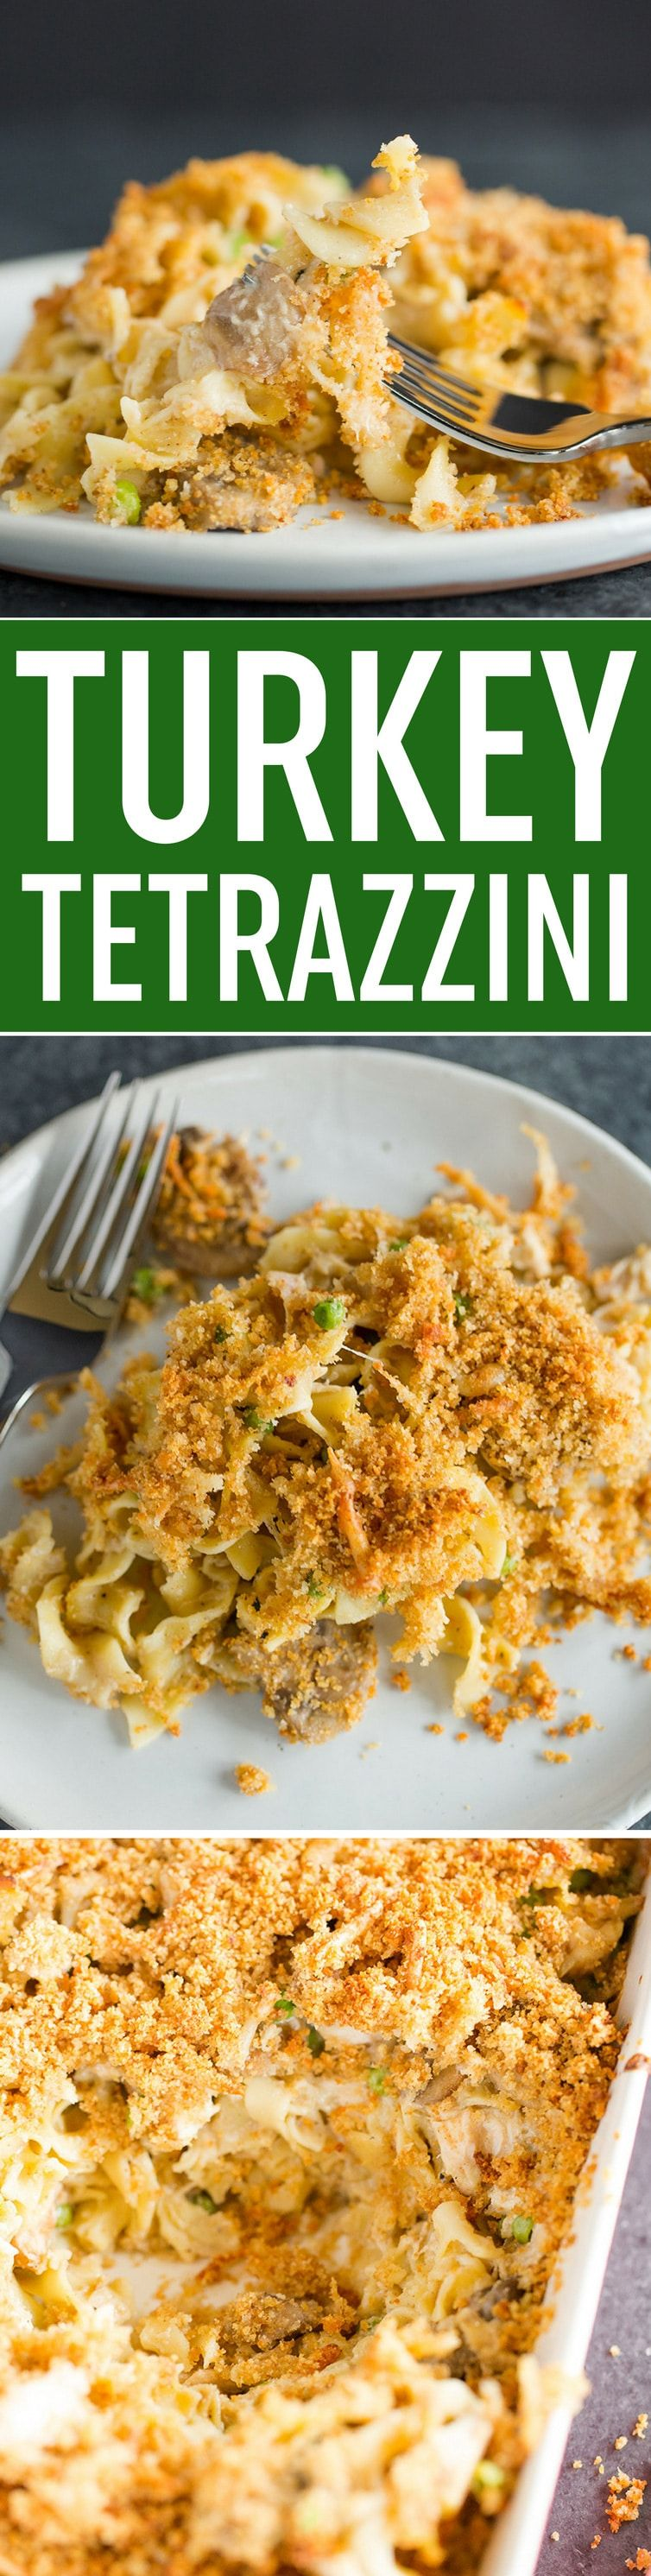 Photo of Turkey Tetrazzini